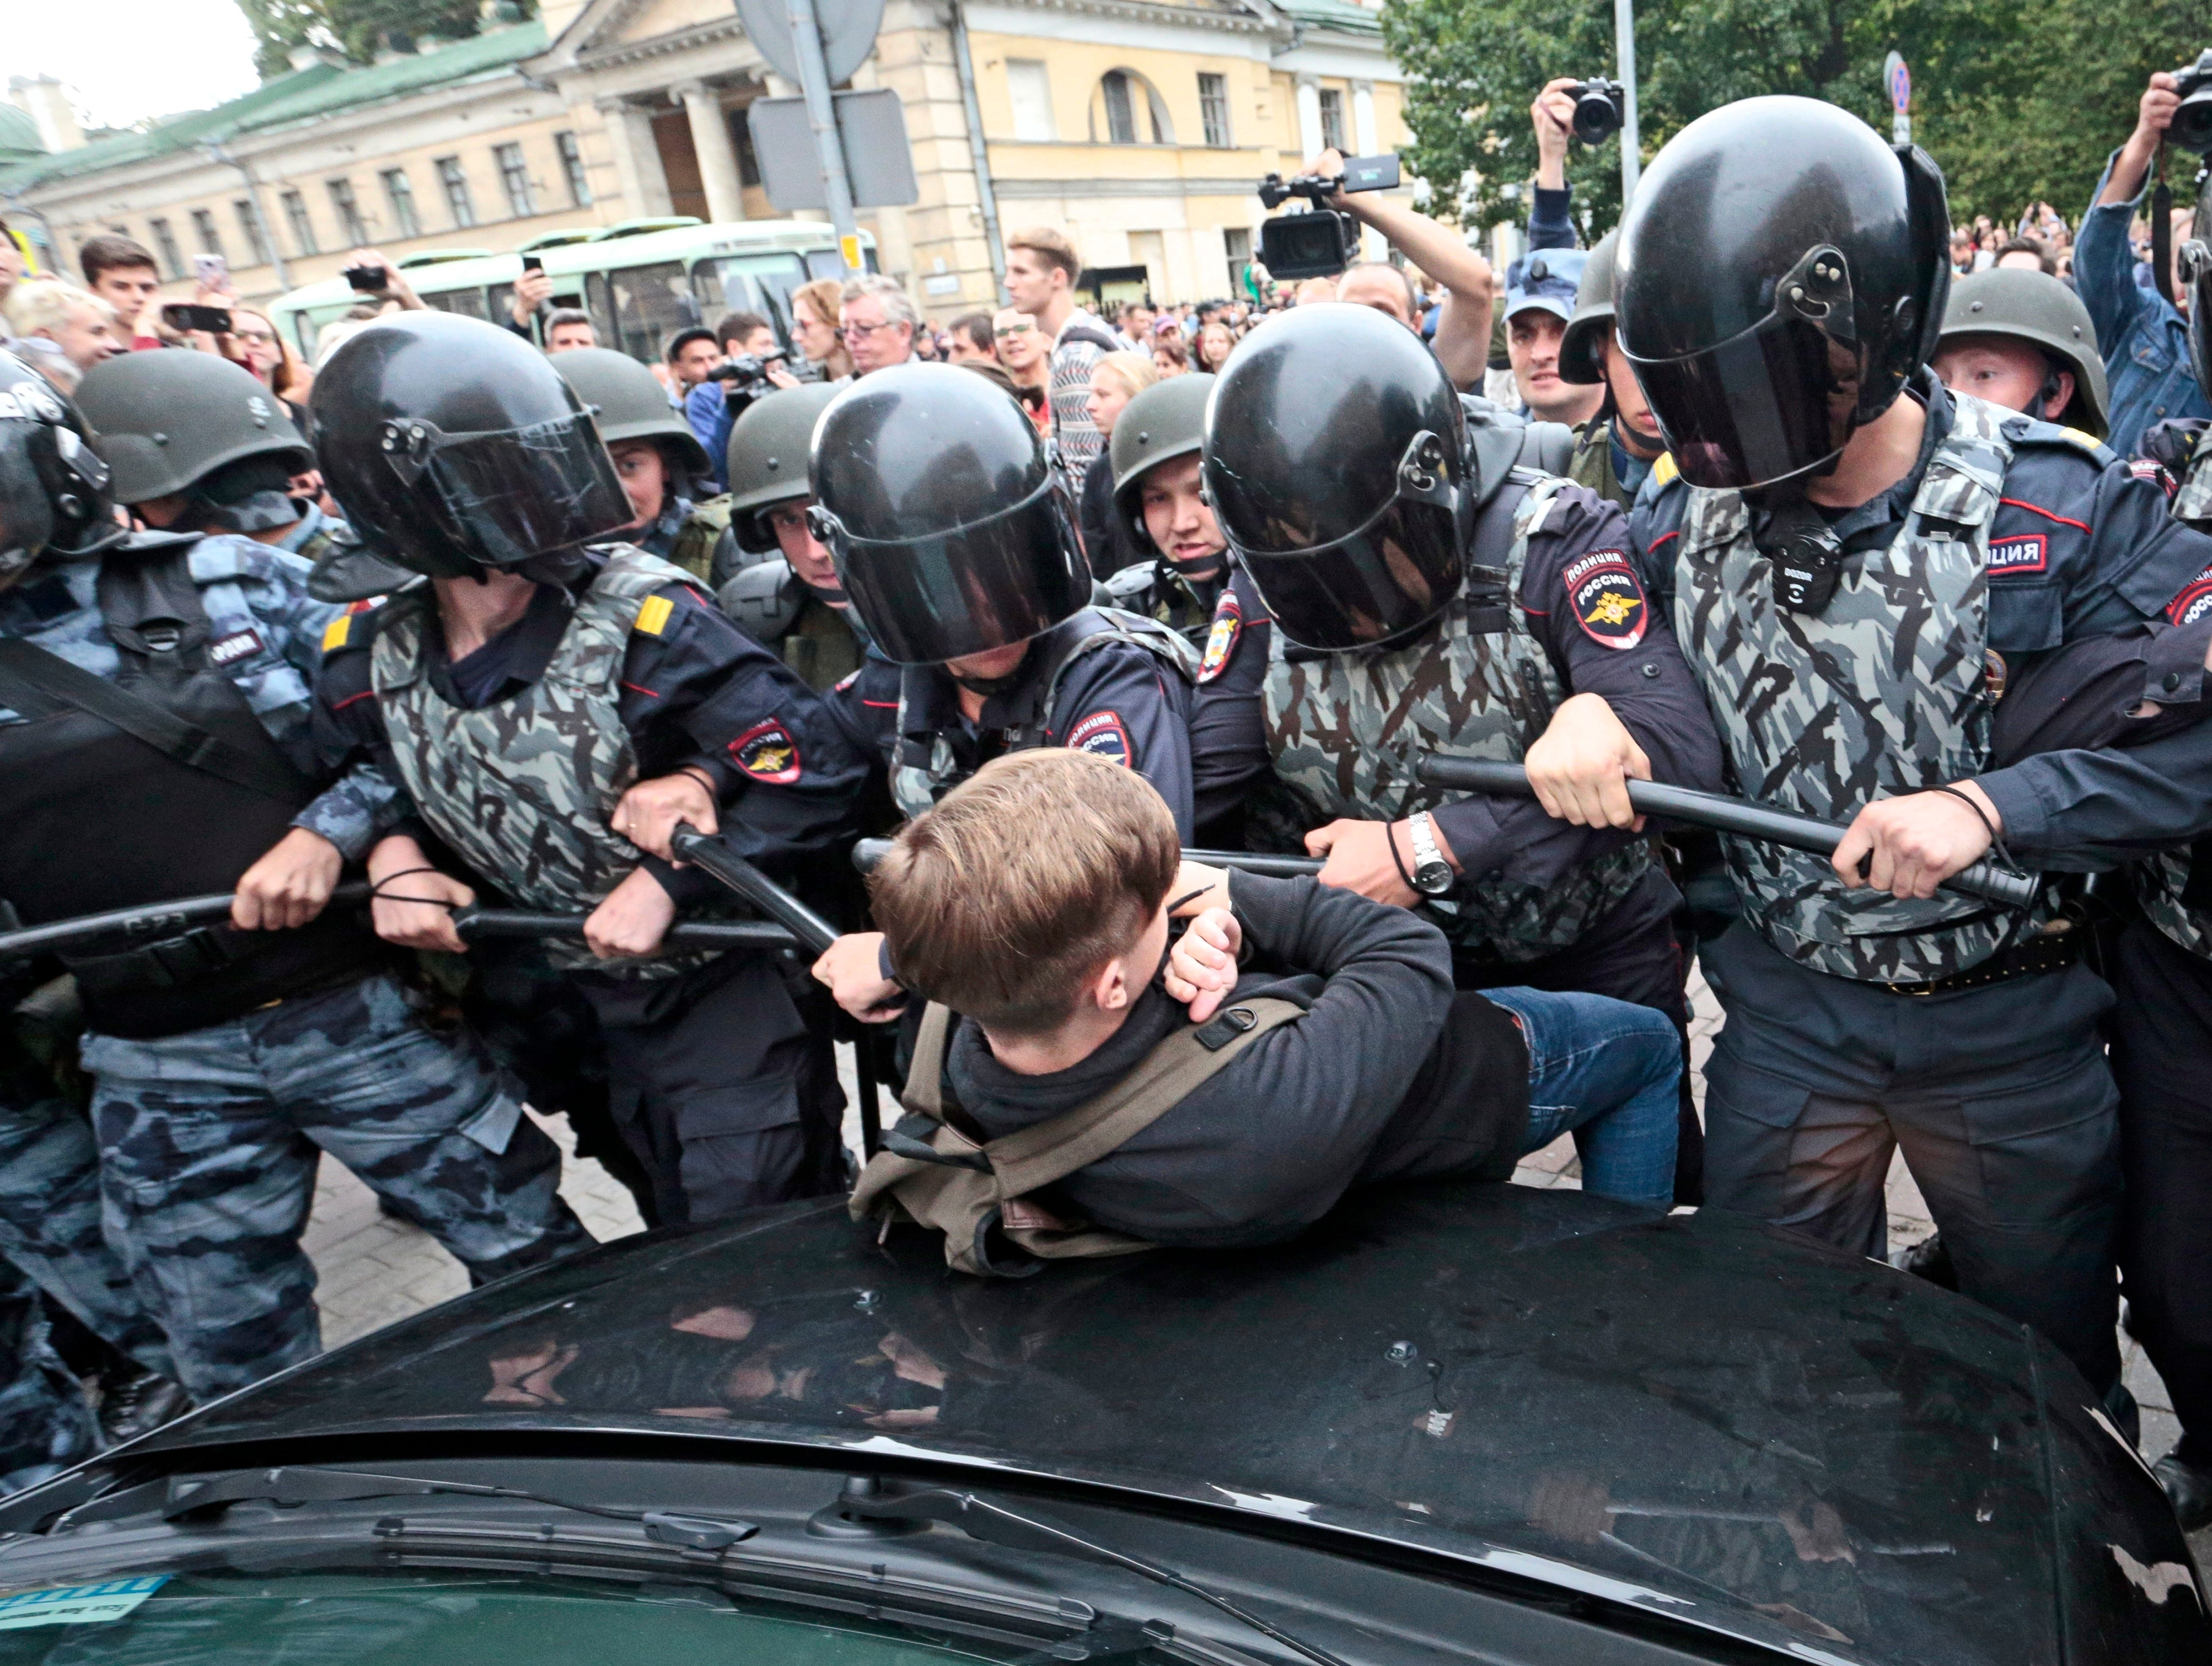 Russian police officers push a teenager during a rally protesting retirement age hikes in St. Petersburg, Russia, Sunday, Sept. 9, 2018. A government plan to increase the age for collecting state pensions brought protests across Russia's 11 time zones on Sunday even though the opposition leader who called them was in jail. Nearly 300 people were reported arrested.